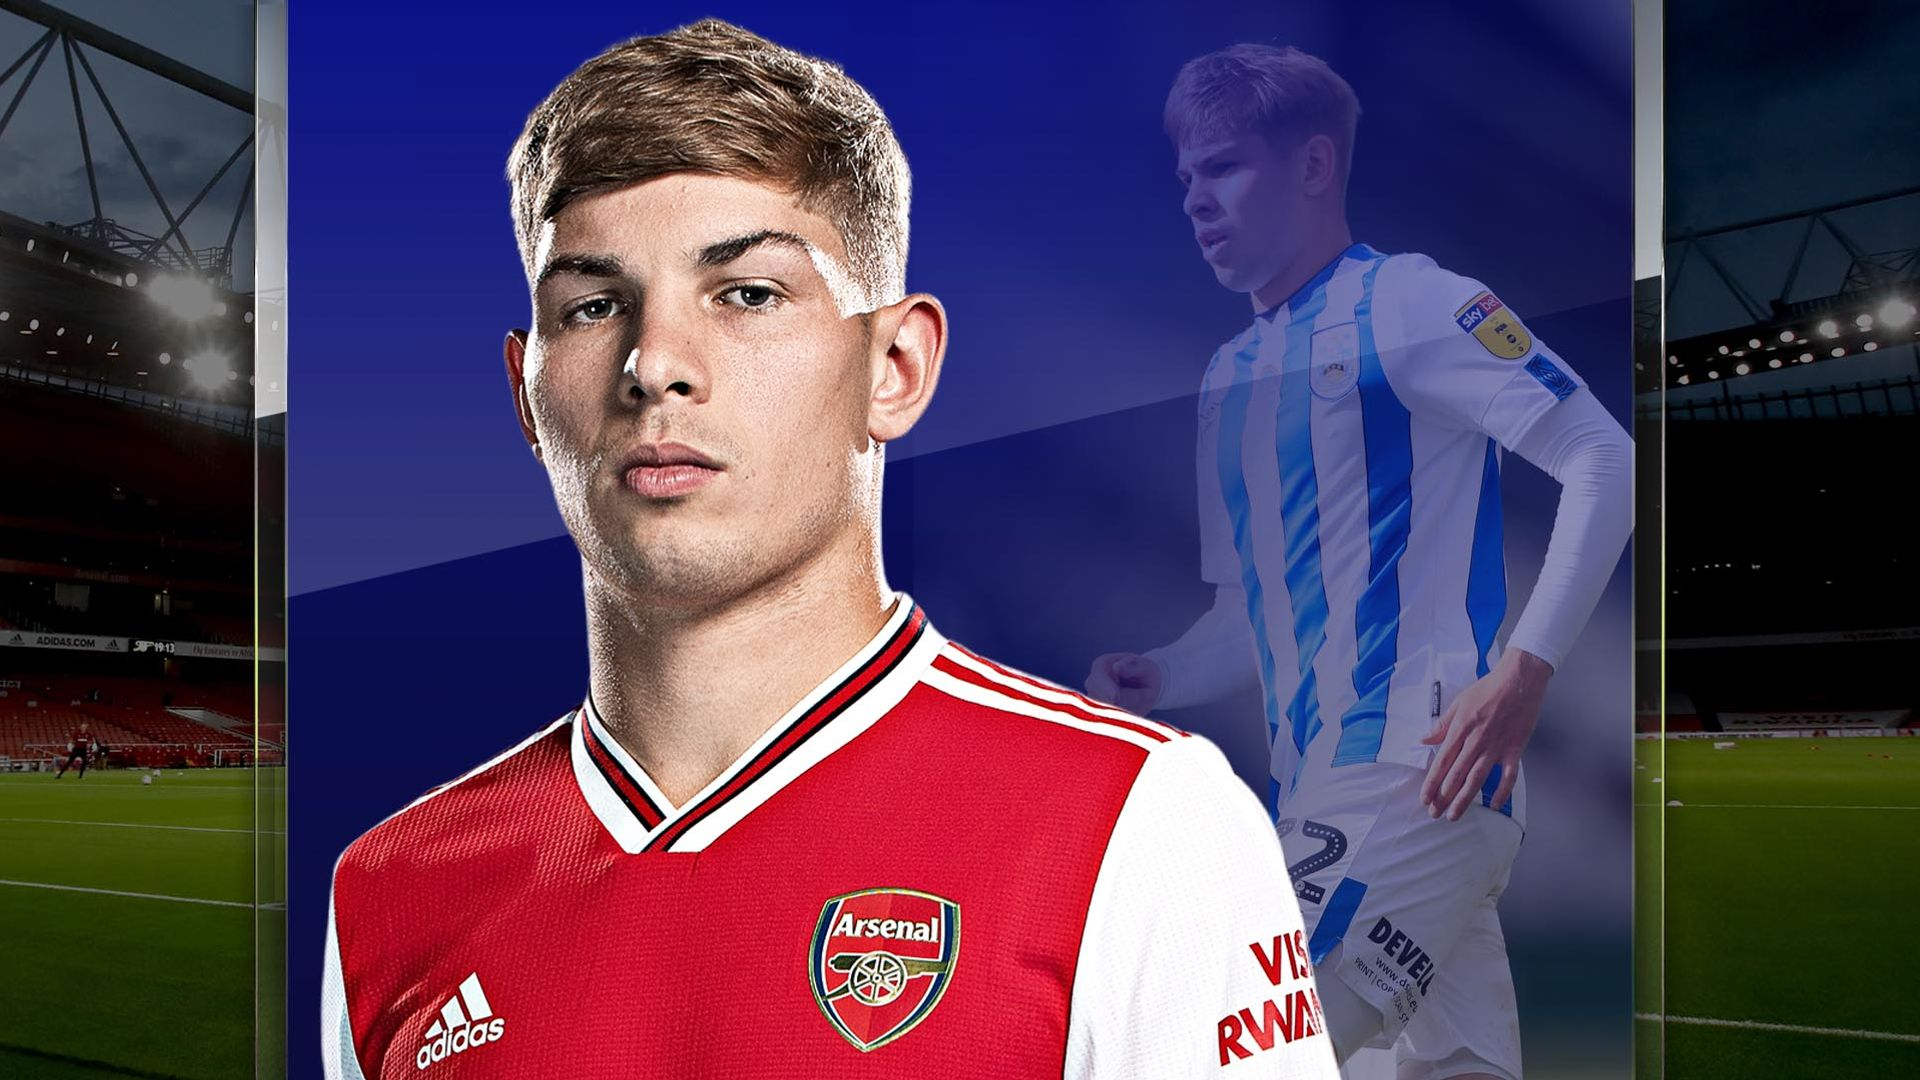 Smith Rowe grew up in Championship